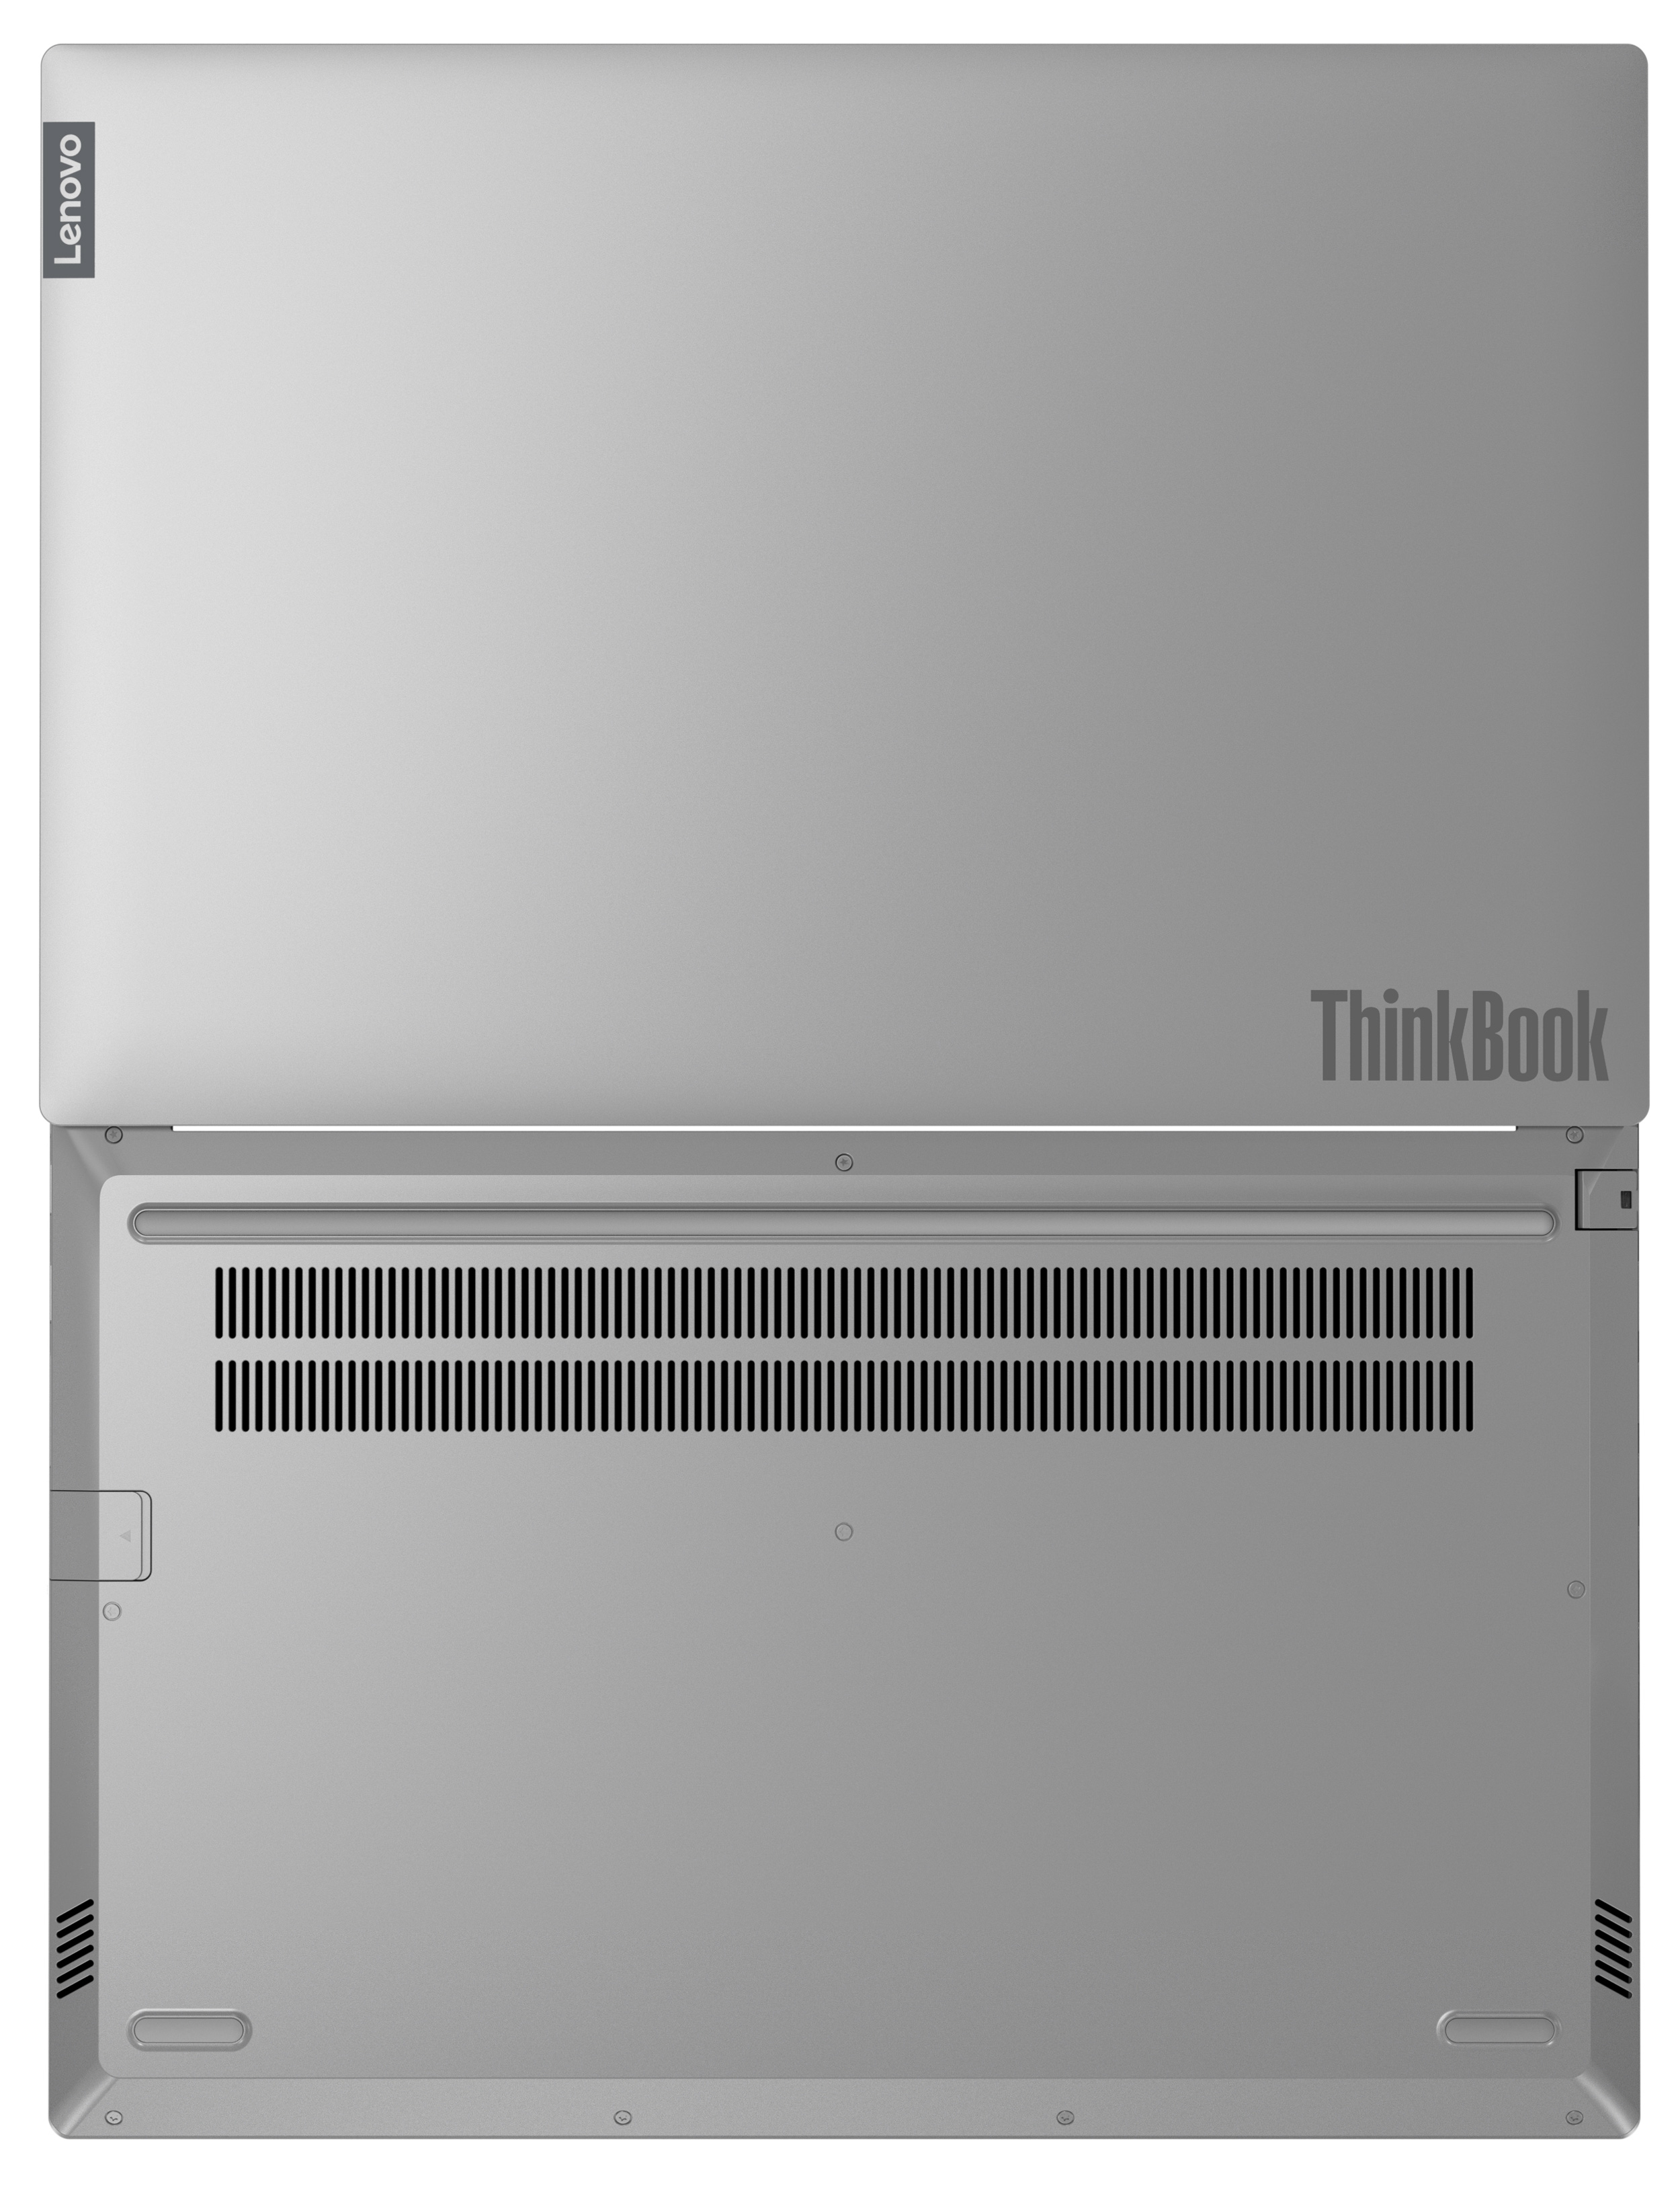 Фото  Ноутбук ThinkBook 15-IIL Mineral Grey (20SM003XRU)